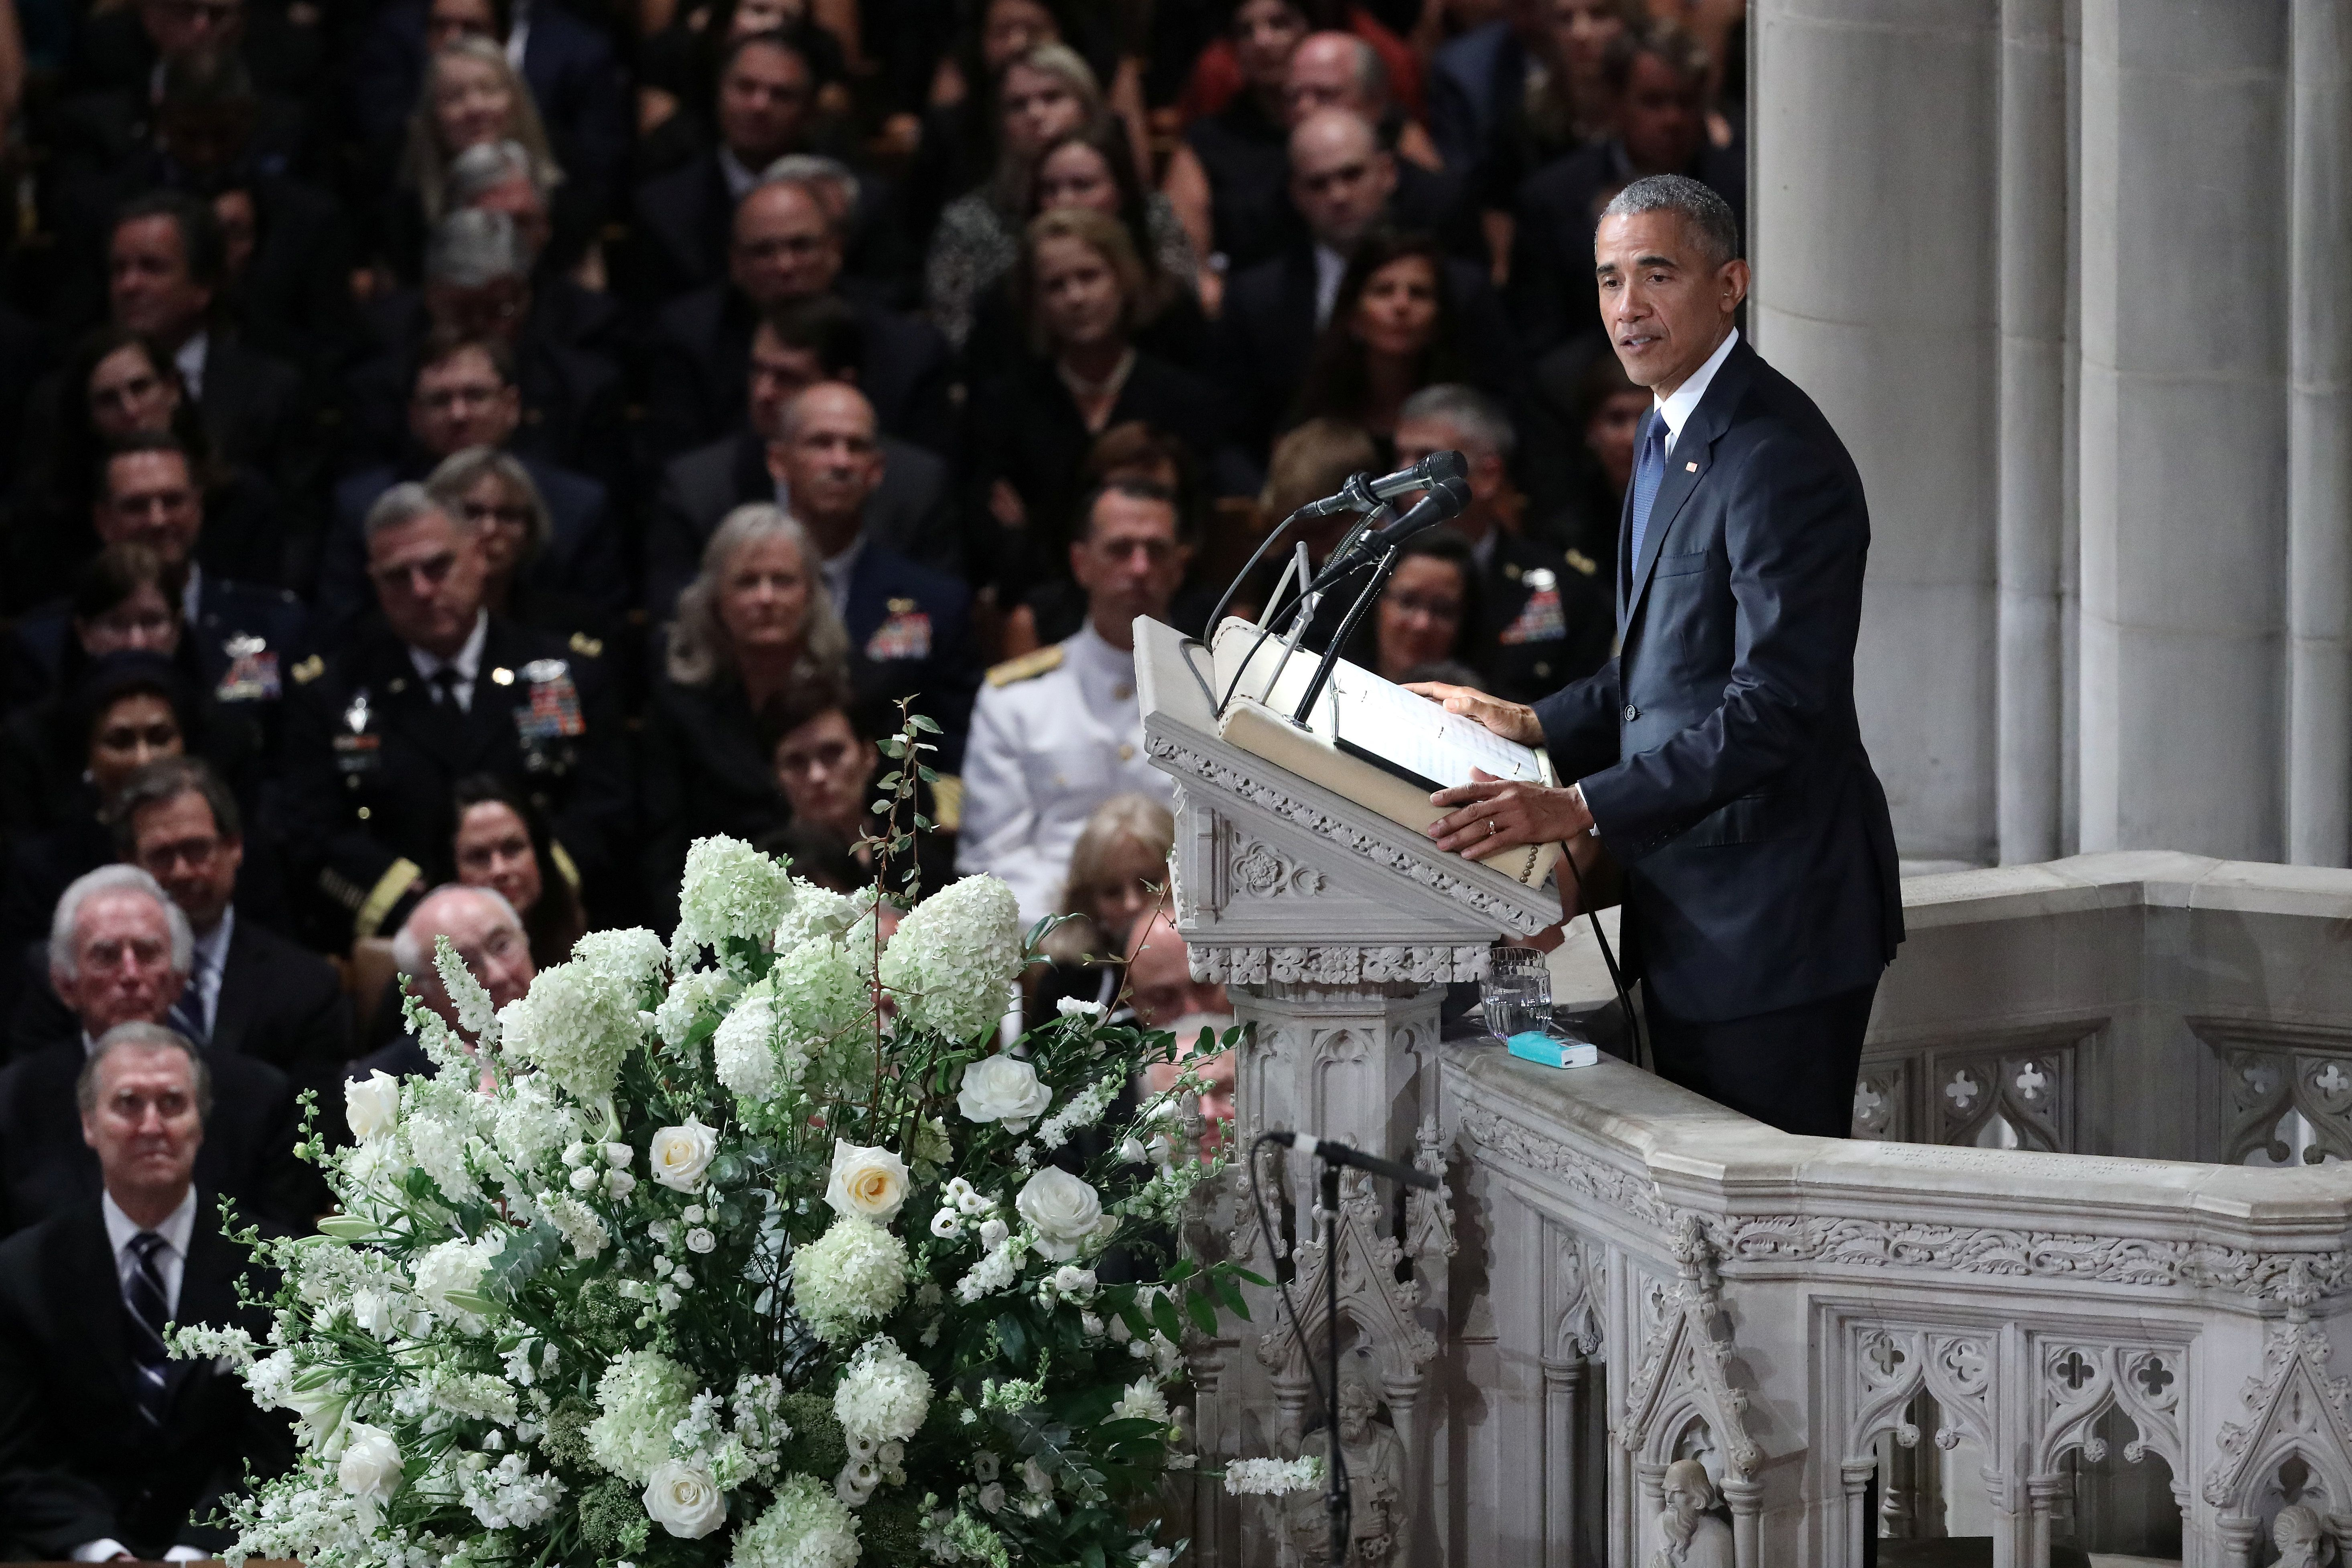 Former President Barack Obama speaks at the memorial service of Sen. John McCain (R-Ariz.) at the National Cathedral in Washi